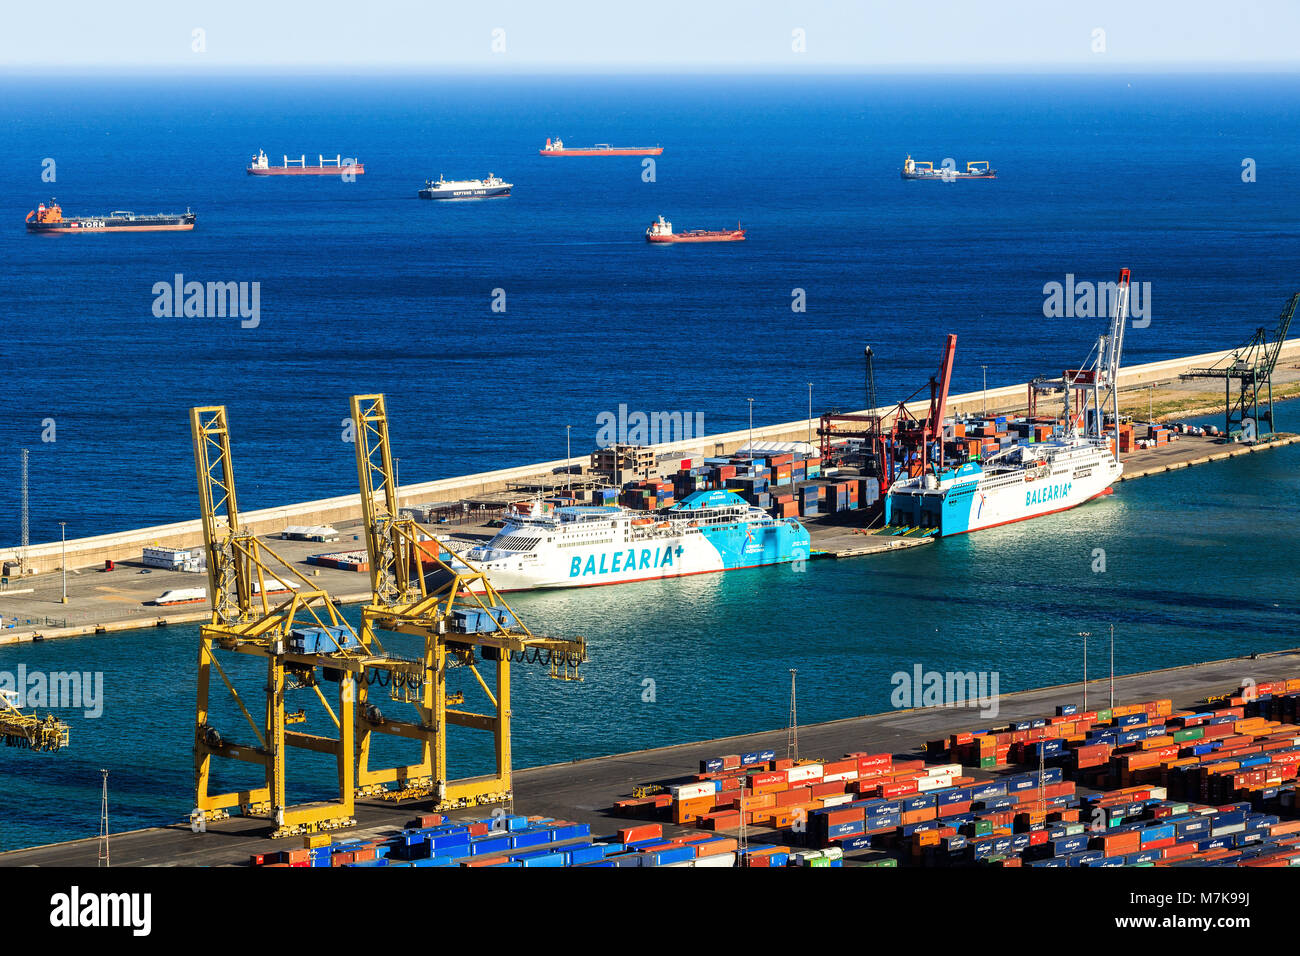 Panoramic view of the cargo port in Barcelona, sunset time, aerial view - Stock Image